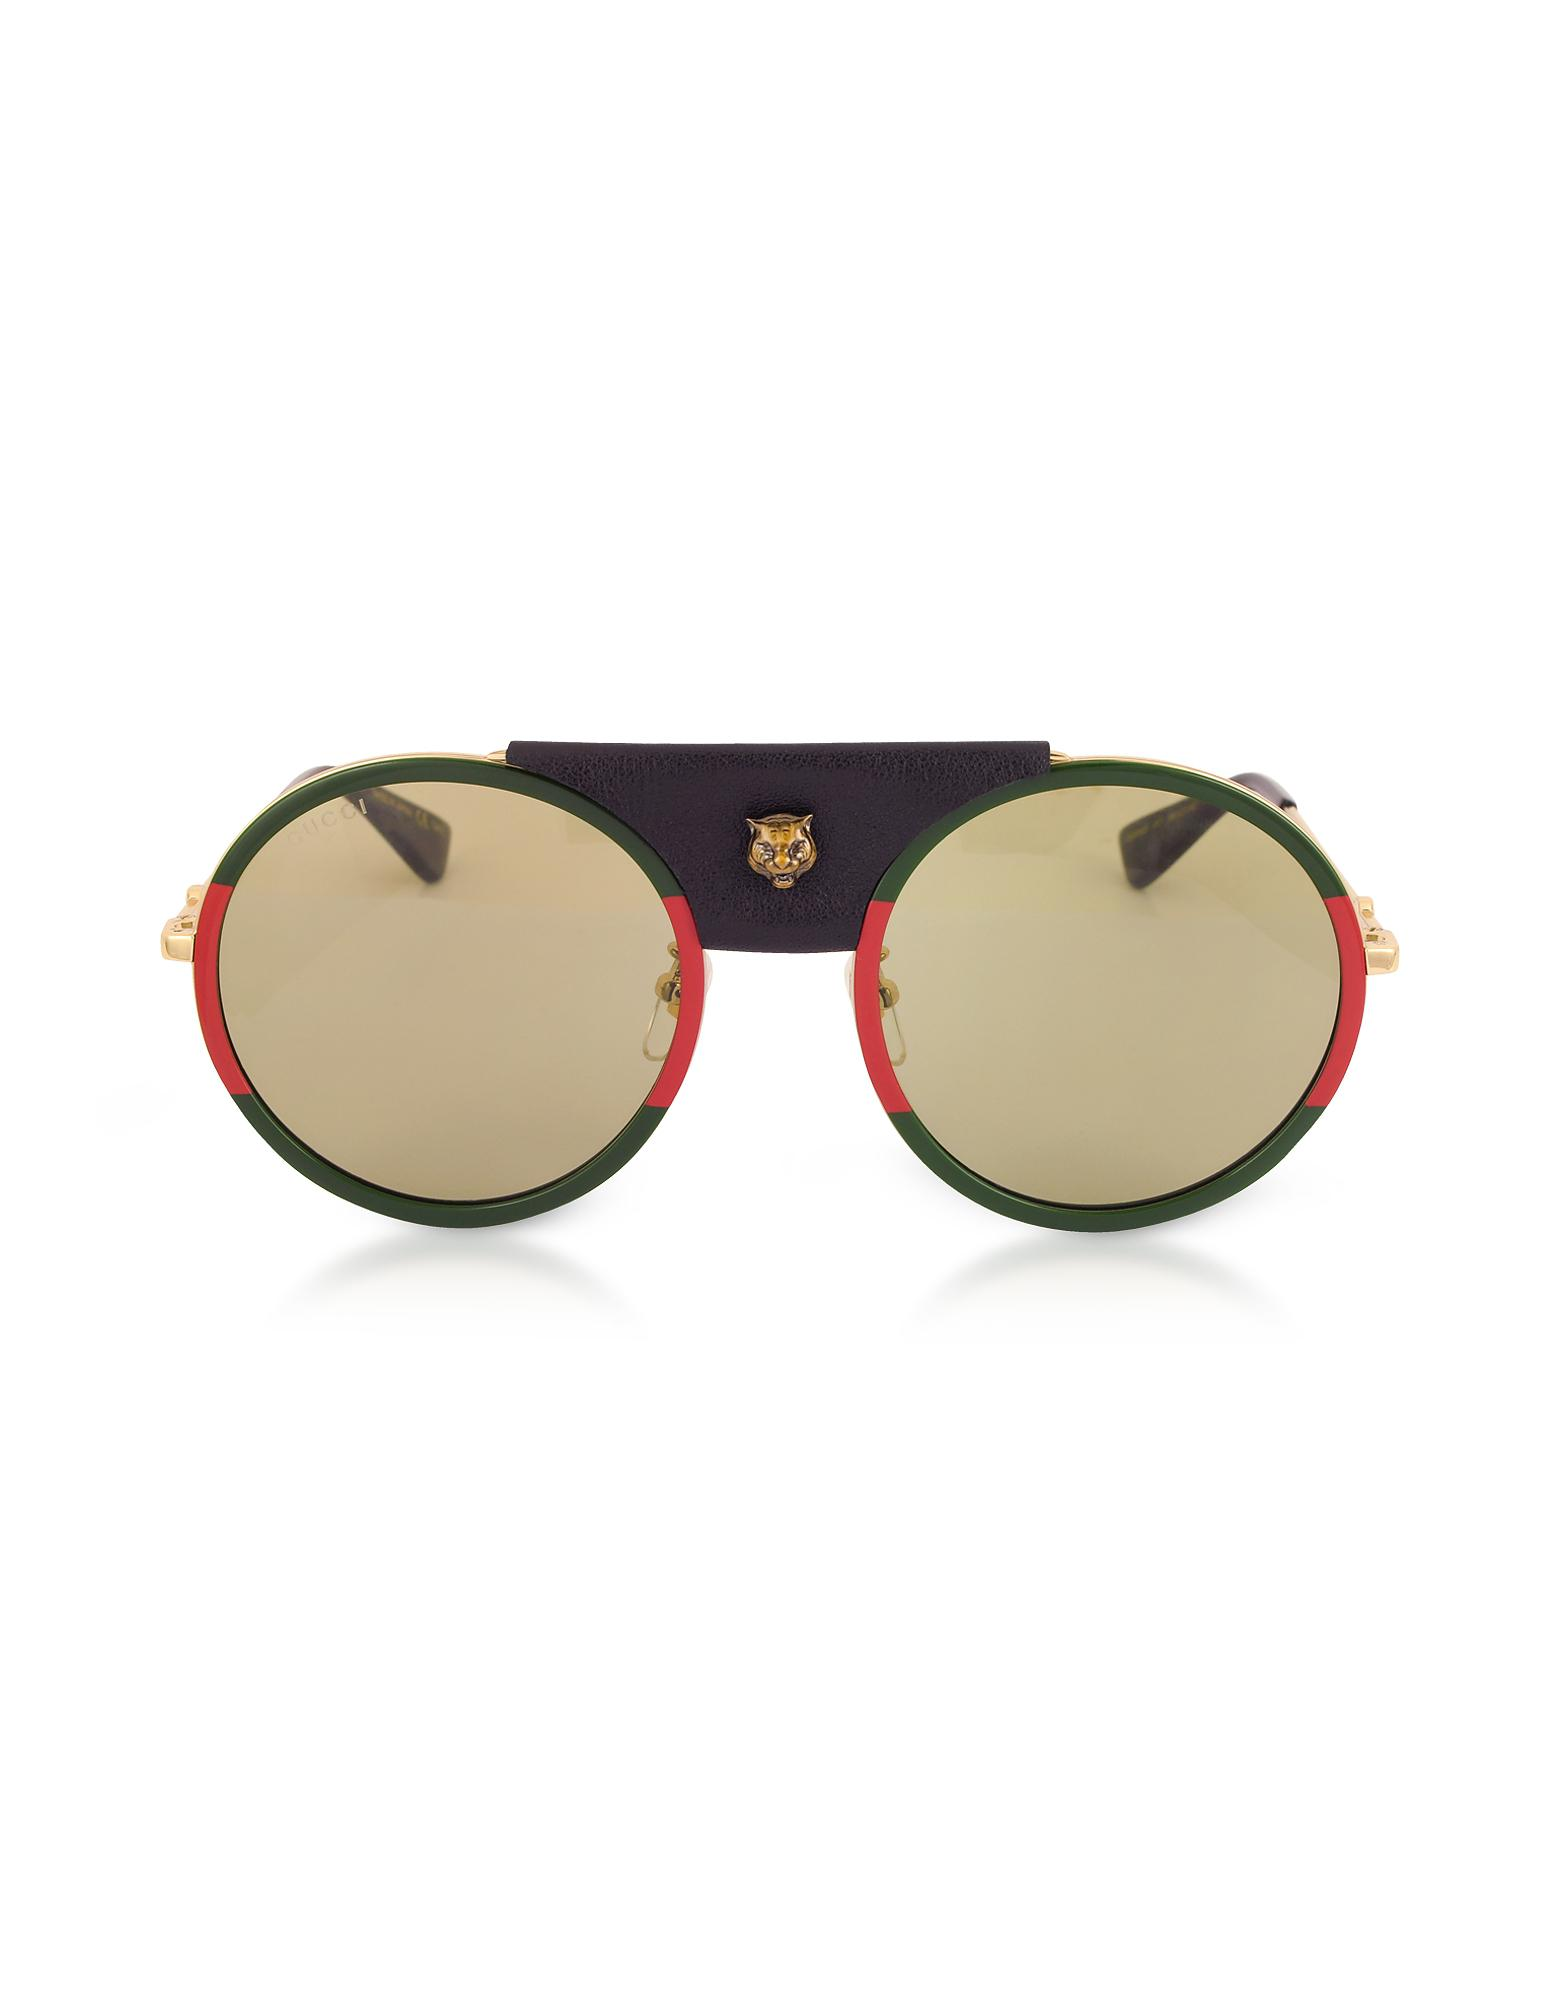 53509b516461 Gucci GG0061S Round-frame Gold Metal And Black Leather Sunglasses W ...